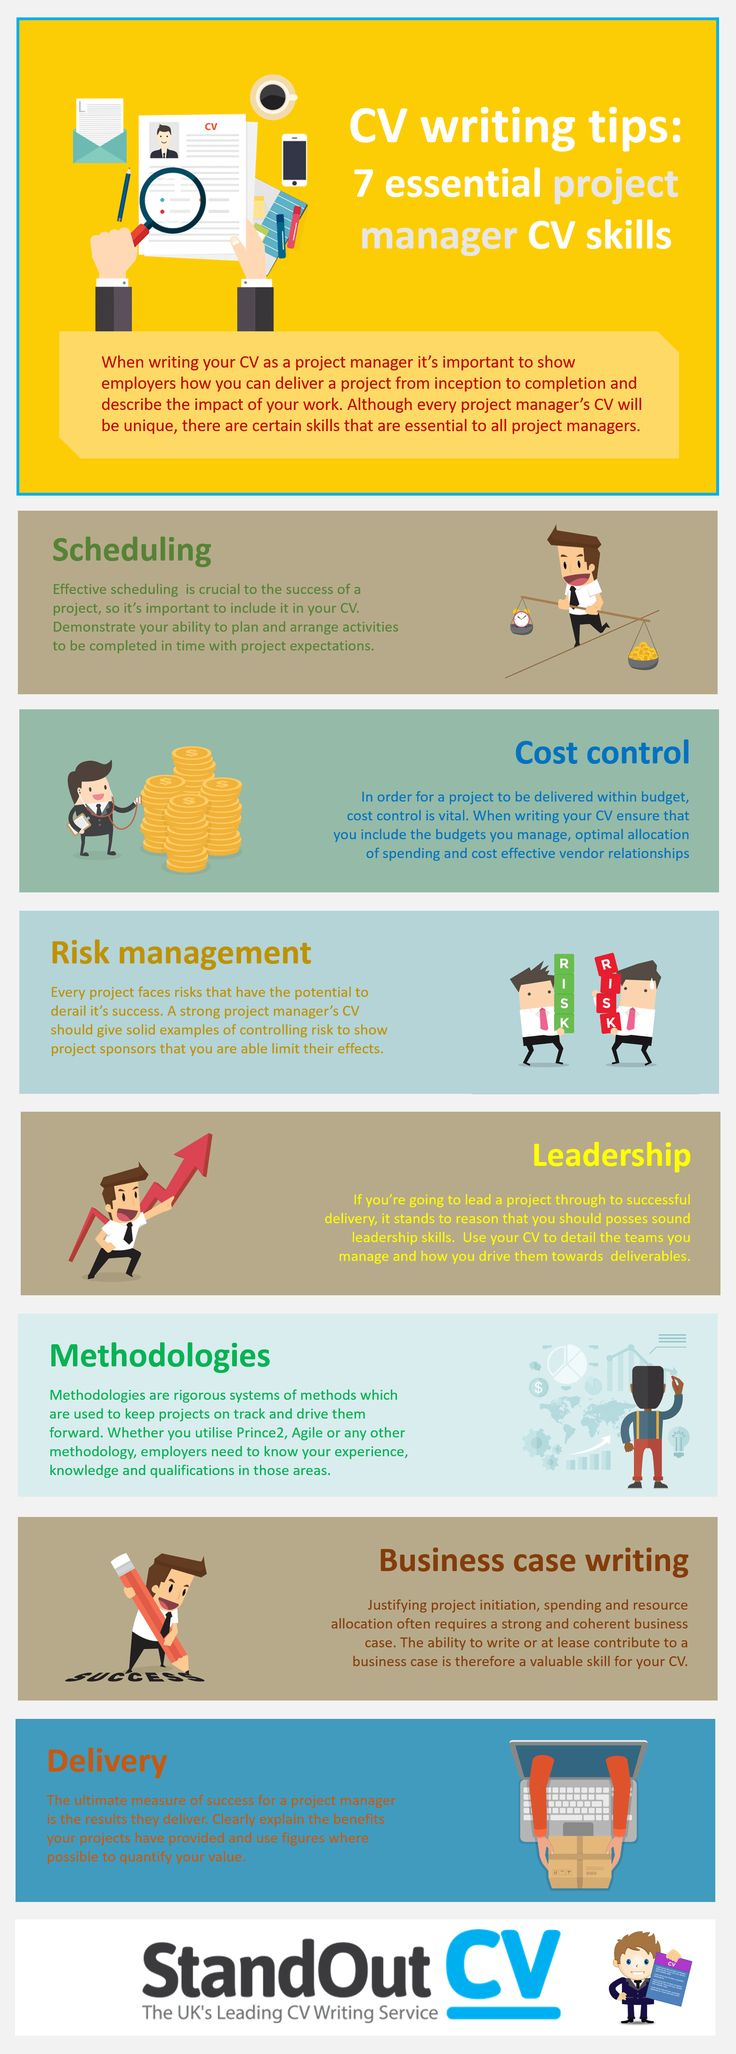 Superior Infographic : 7 Essential Project Management Skills Infographic  Elearninginfograp... JobLoving.com